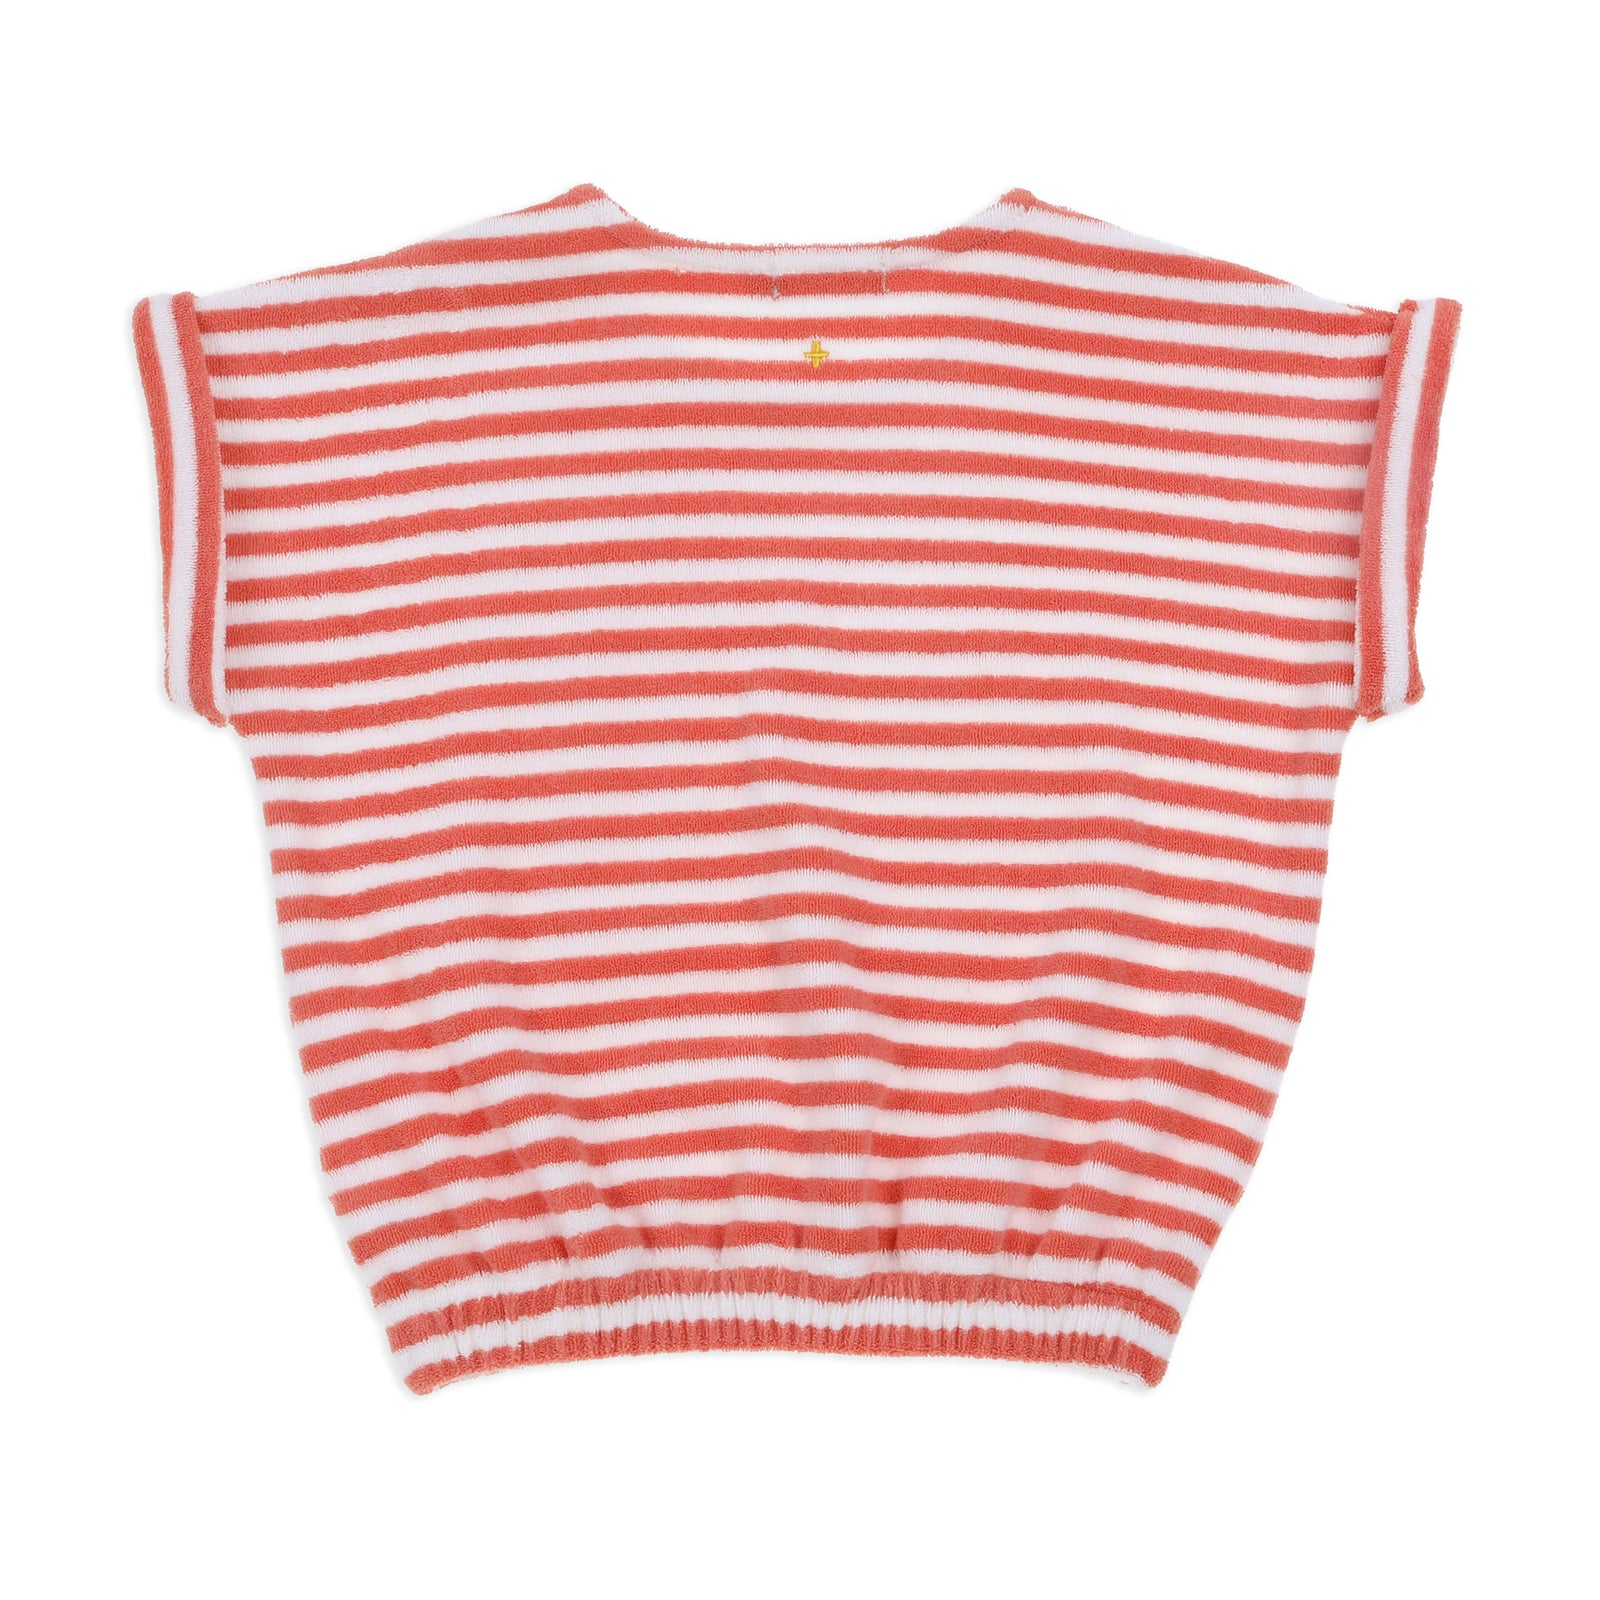 Wyatt Terry Towelling Tee Melon Stripe